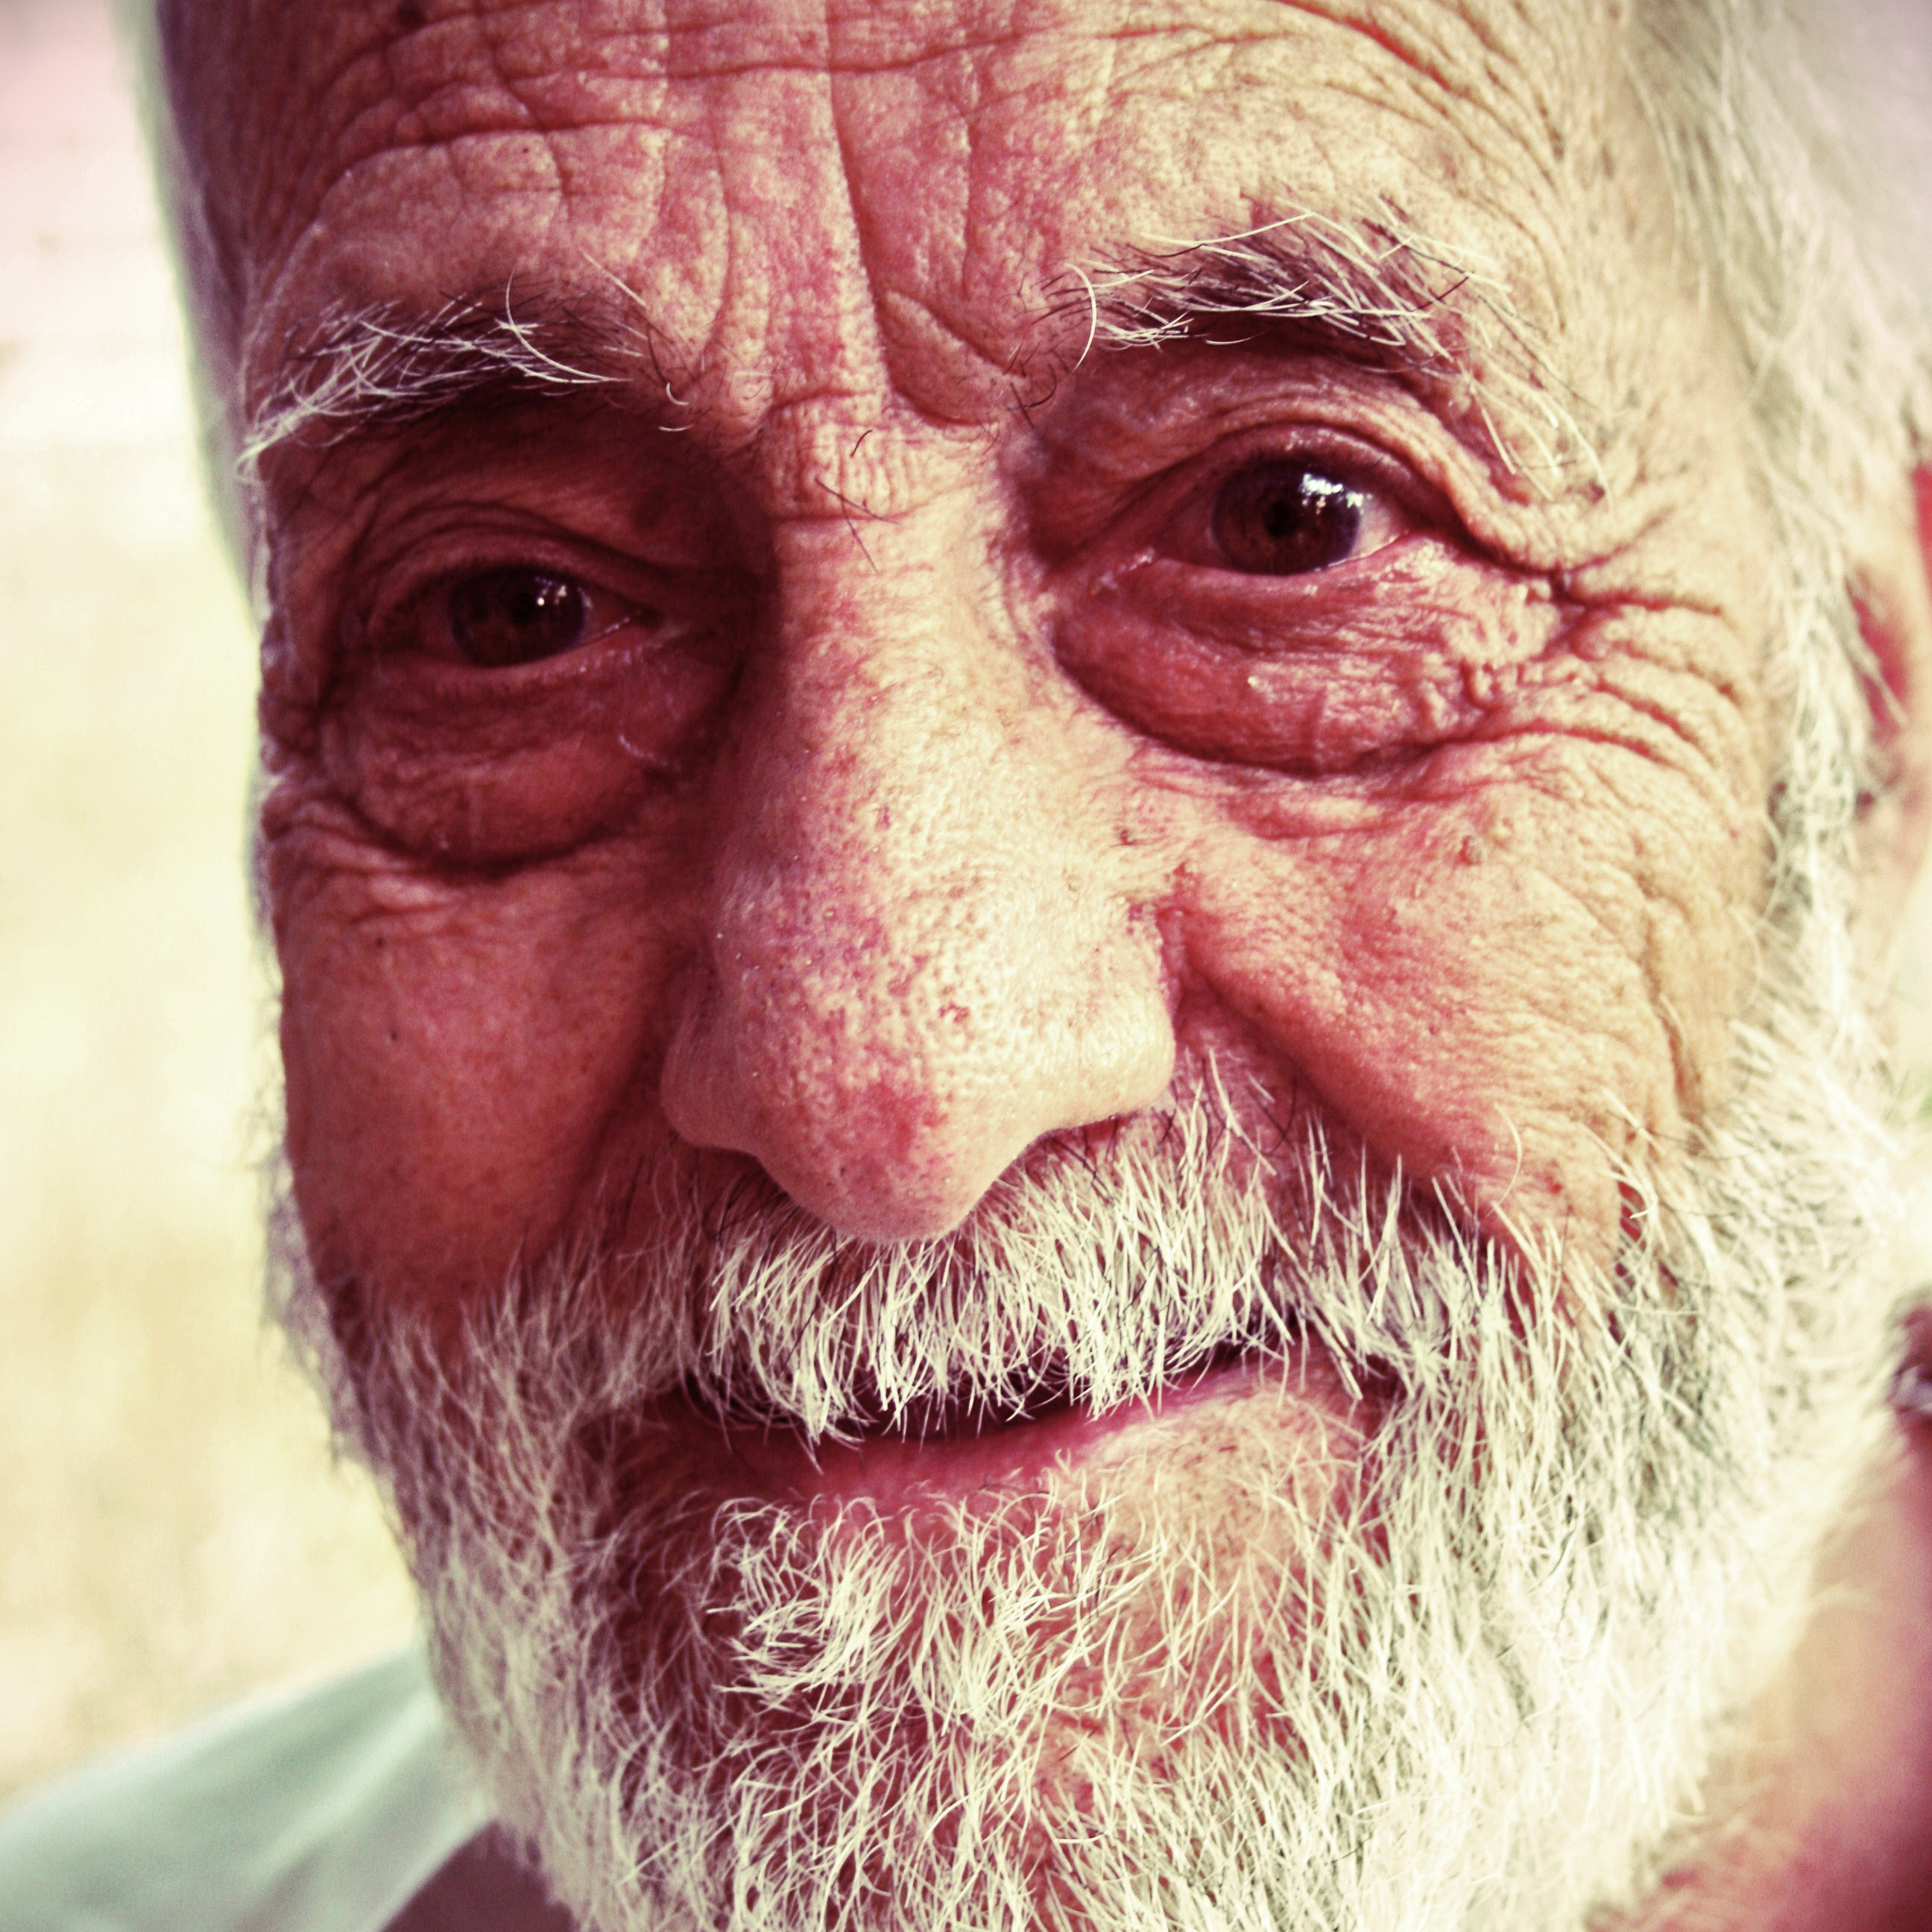 Ageing by sofymakeup on Pinterest | Crows Feet, Old Age and Keys